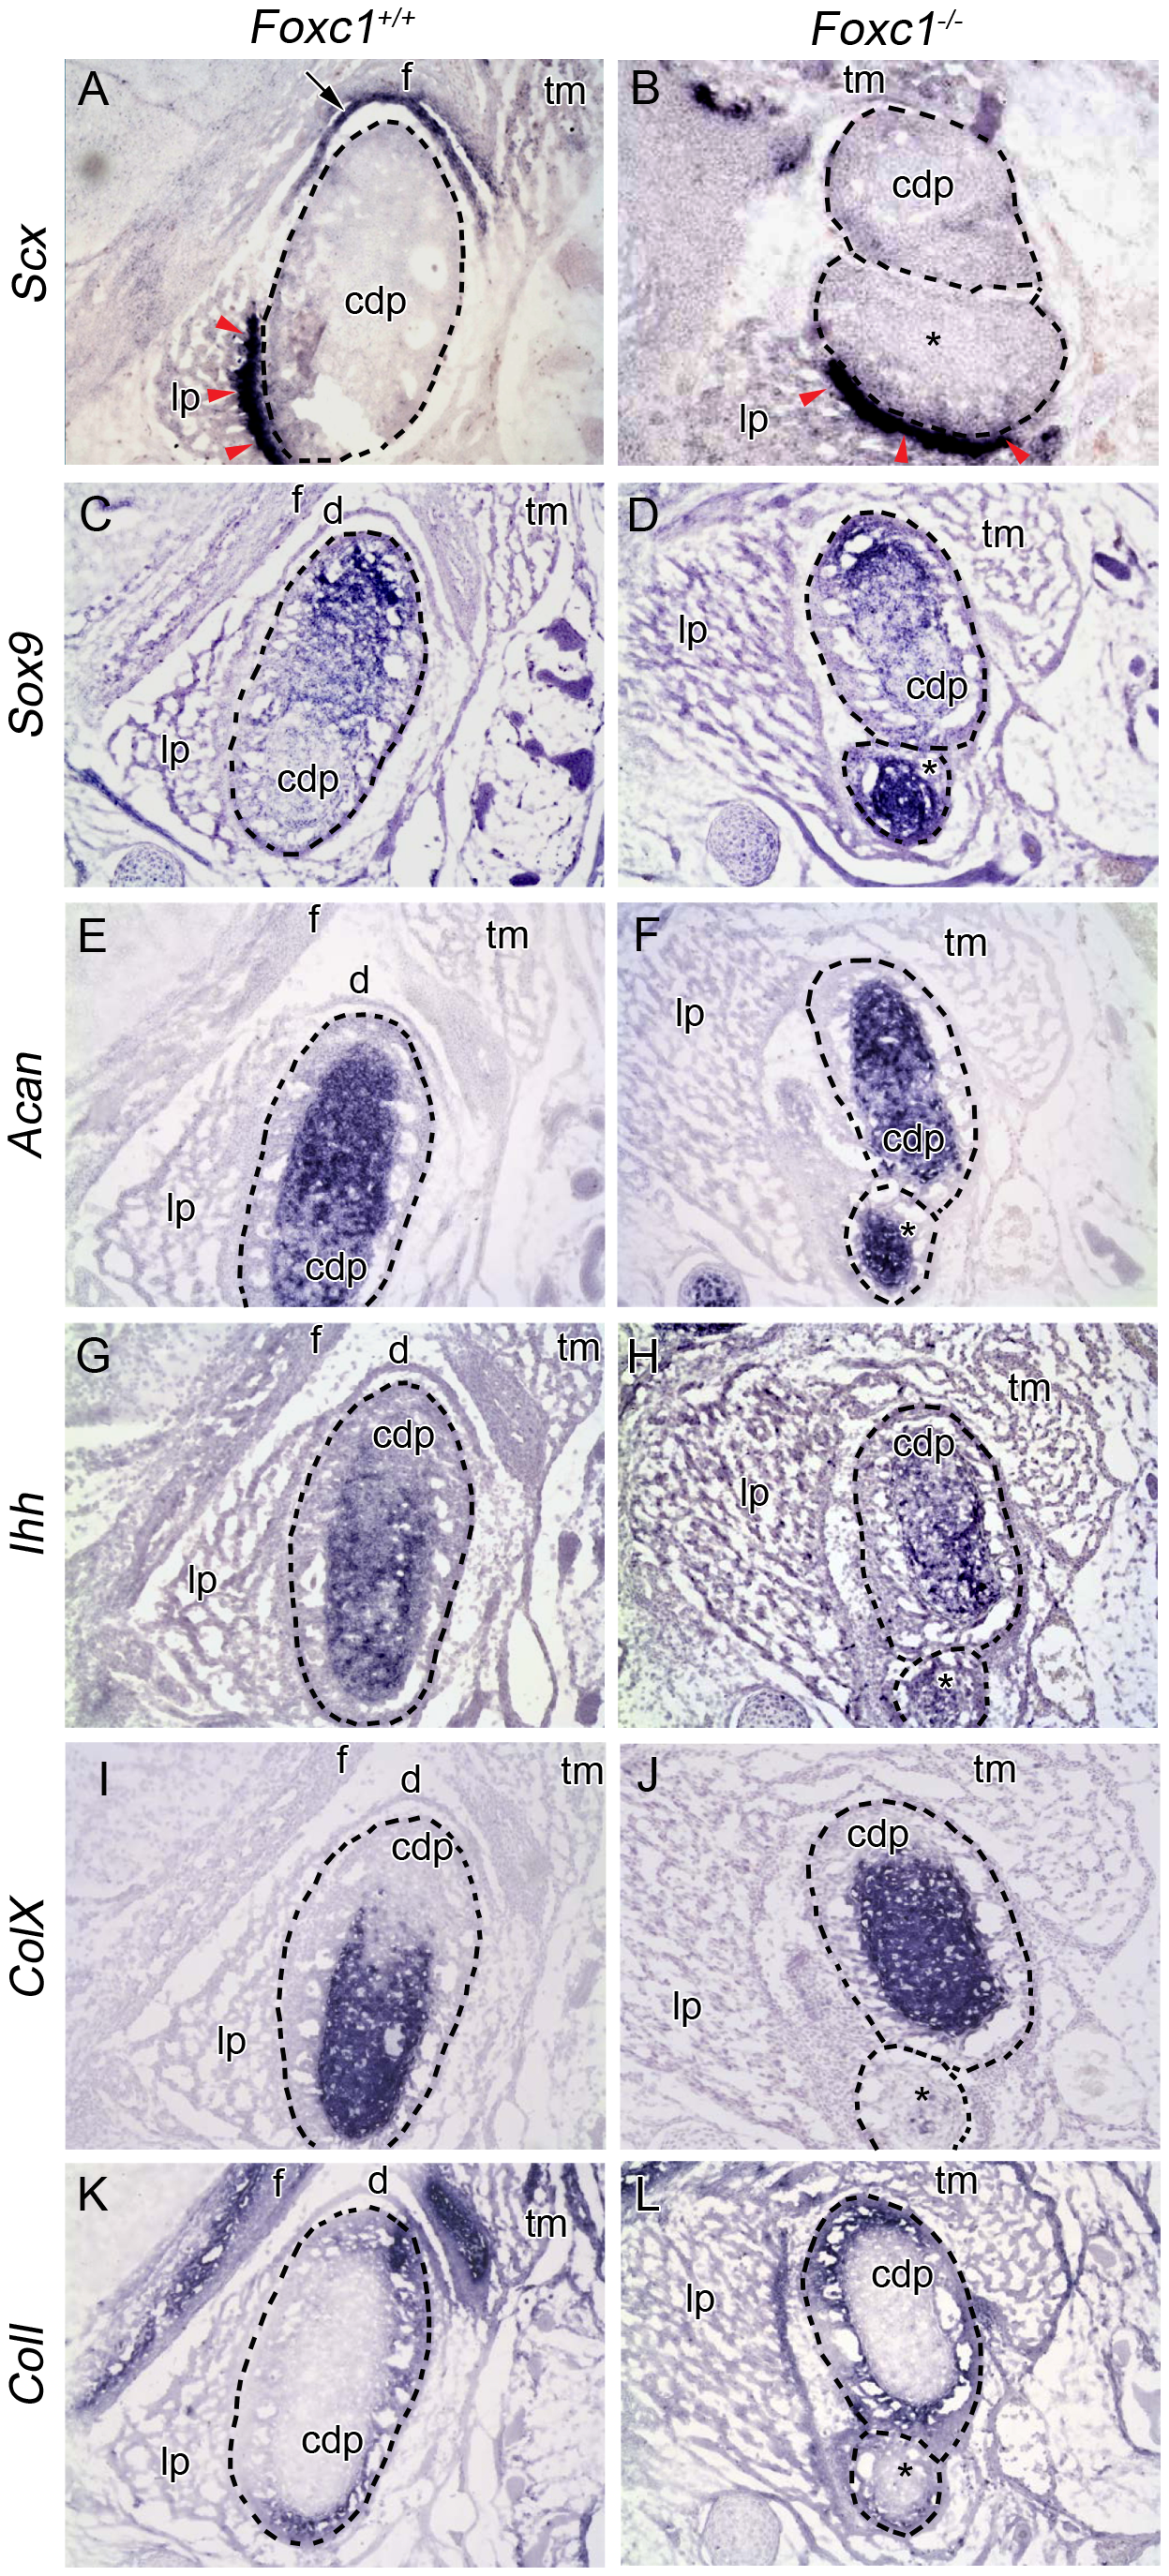 Molecular analysis of developing TMJ in <i>Foxc1<sup>−/−</sup></i> embryos.